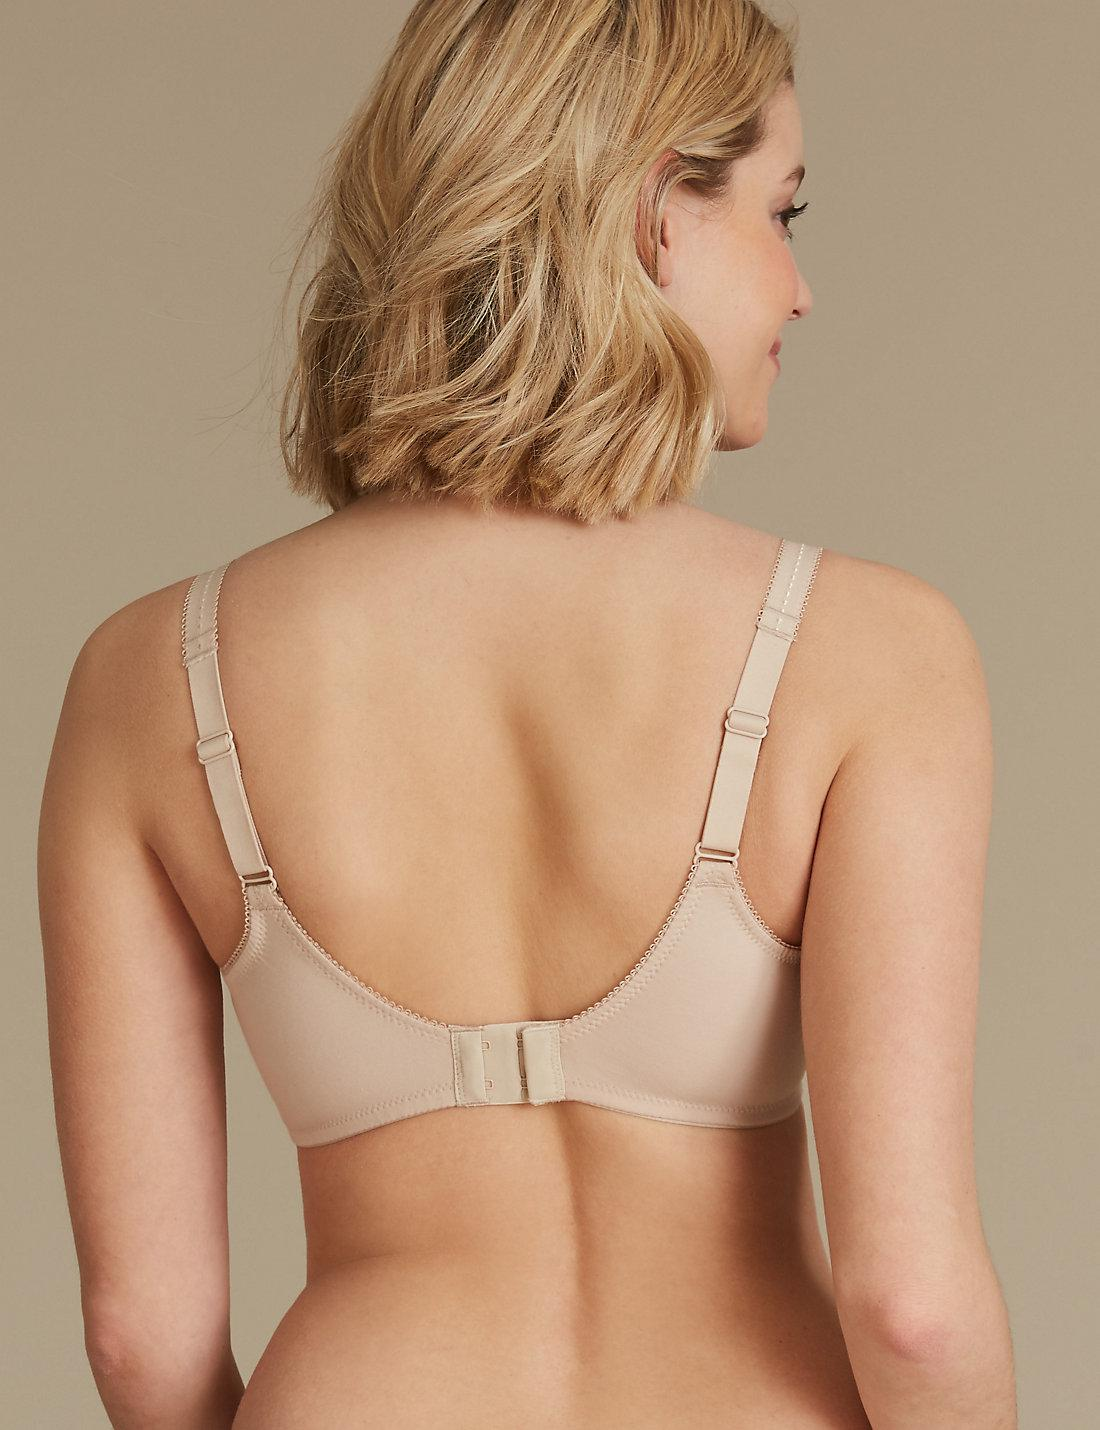 M /& S UNDERWIRED FULL CUP DAISY LACE BRA COTTON RICH BLACK  MARKS /& SPENCER